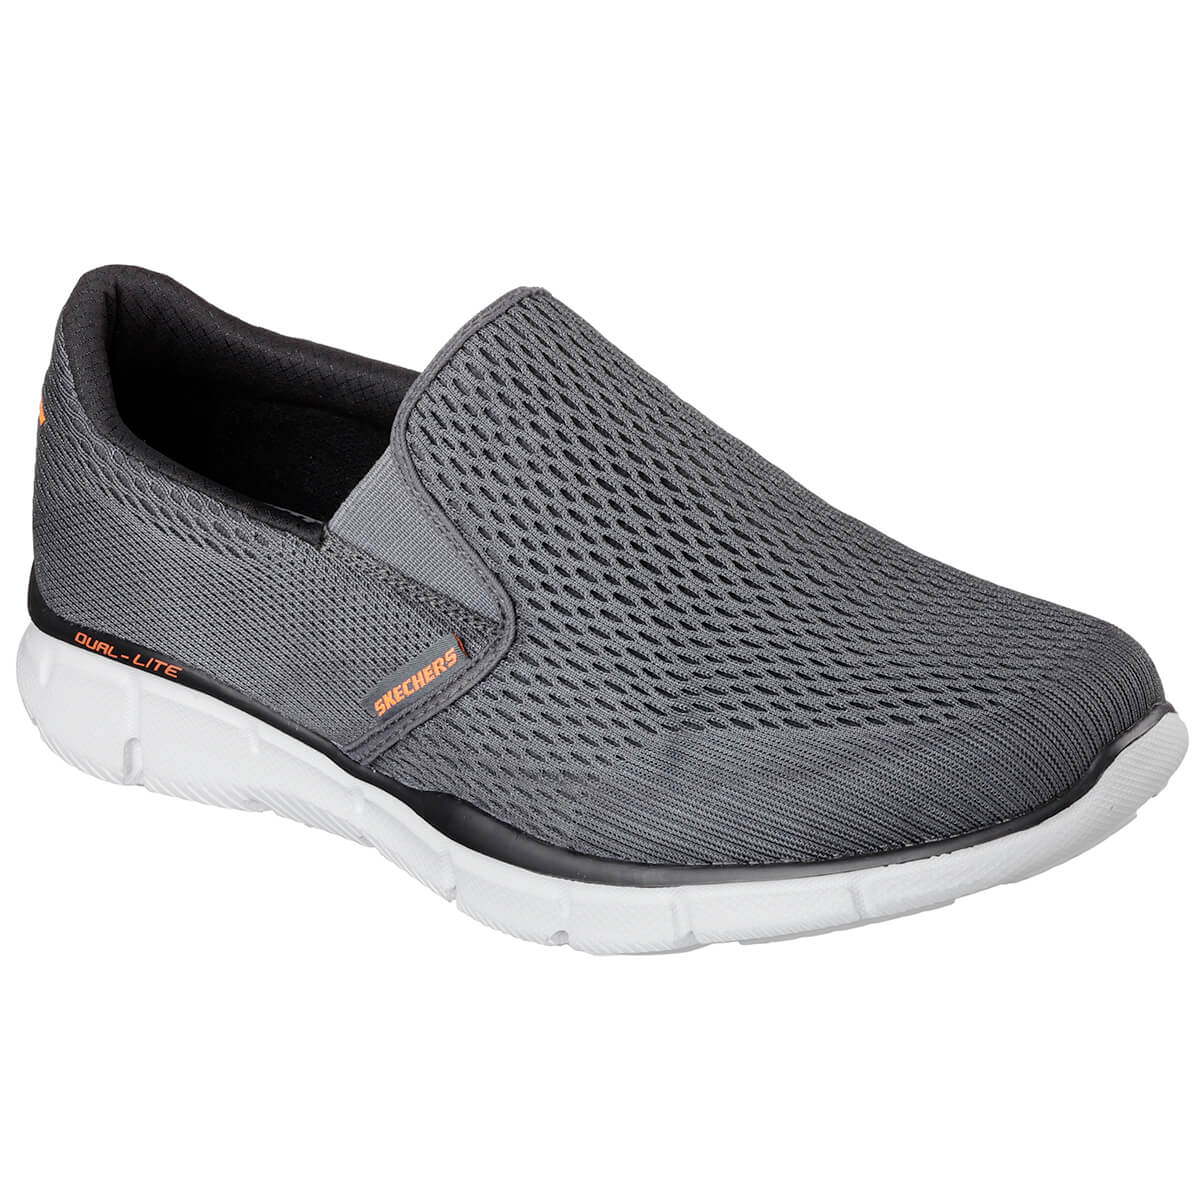 Skechers Mens Equalizer Double Play Shoes Slip On Sports Training Shoes Play Trainers 6467d8